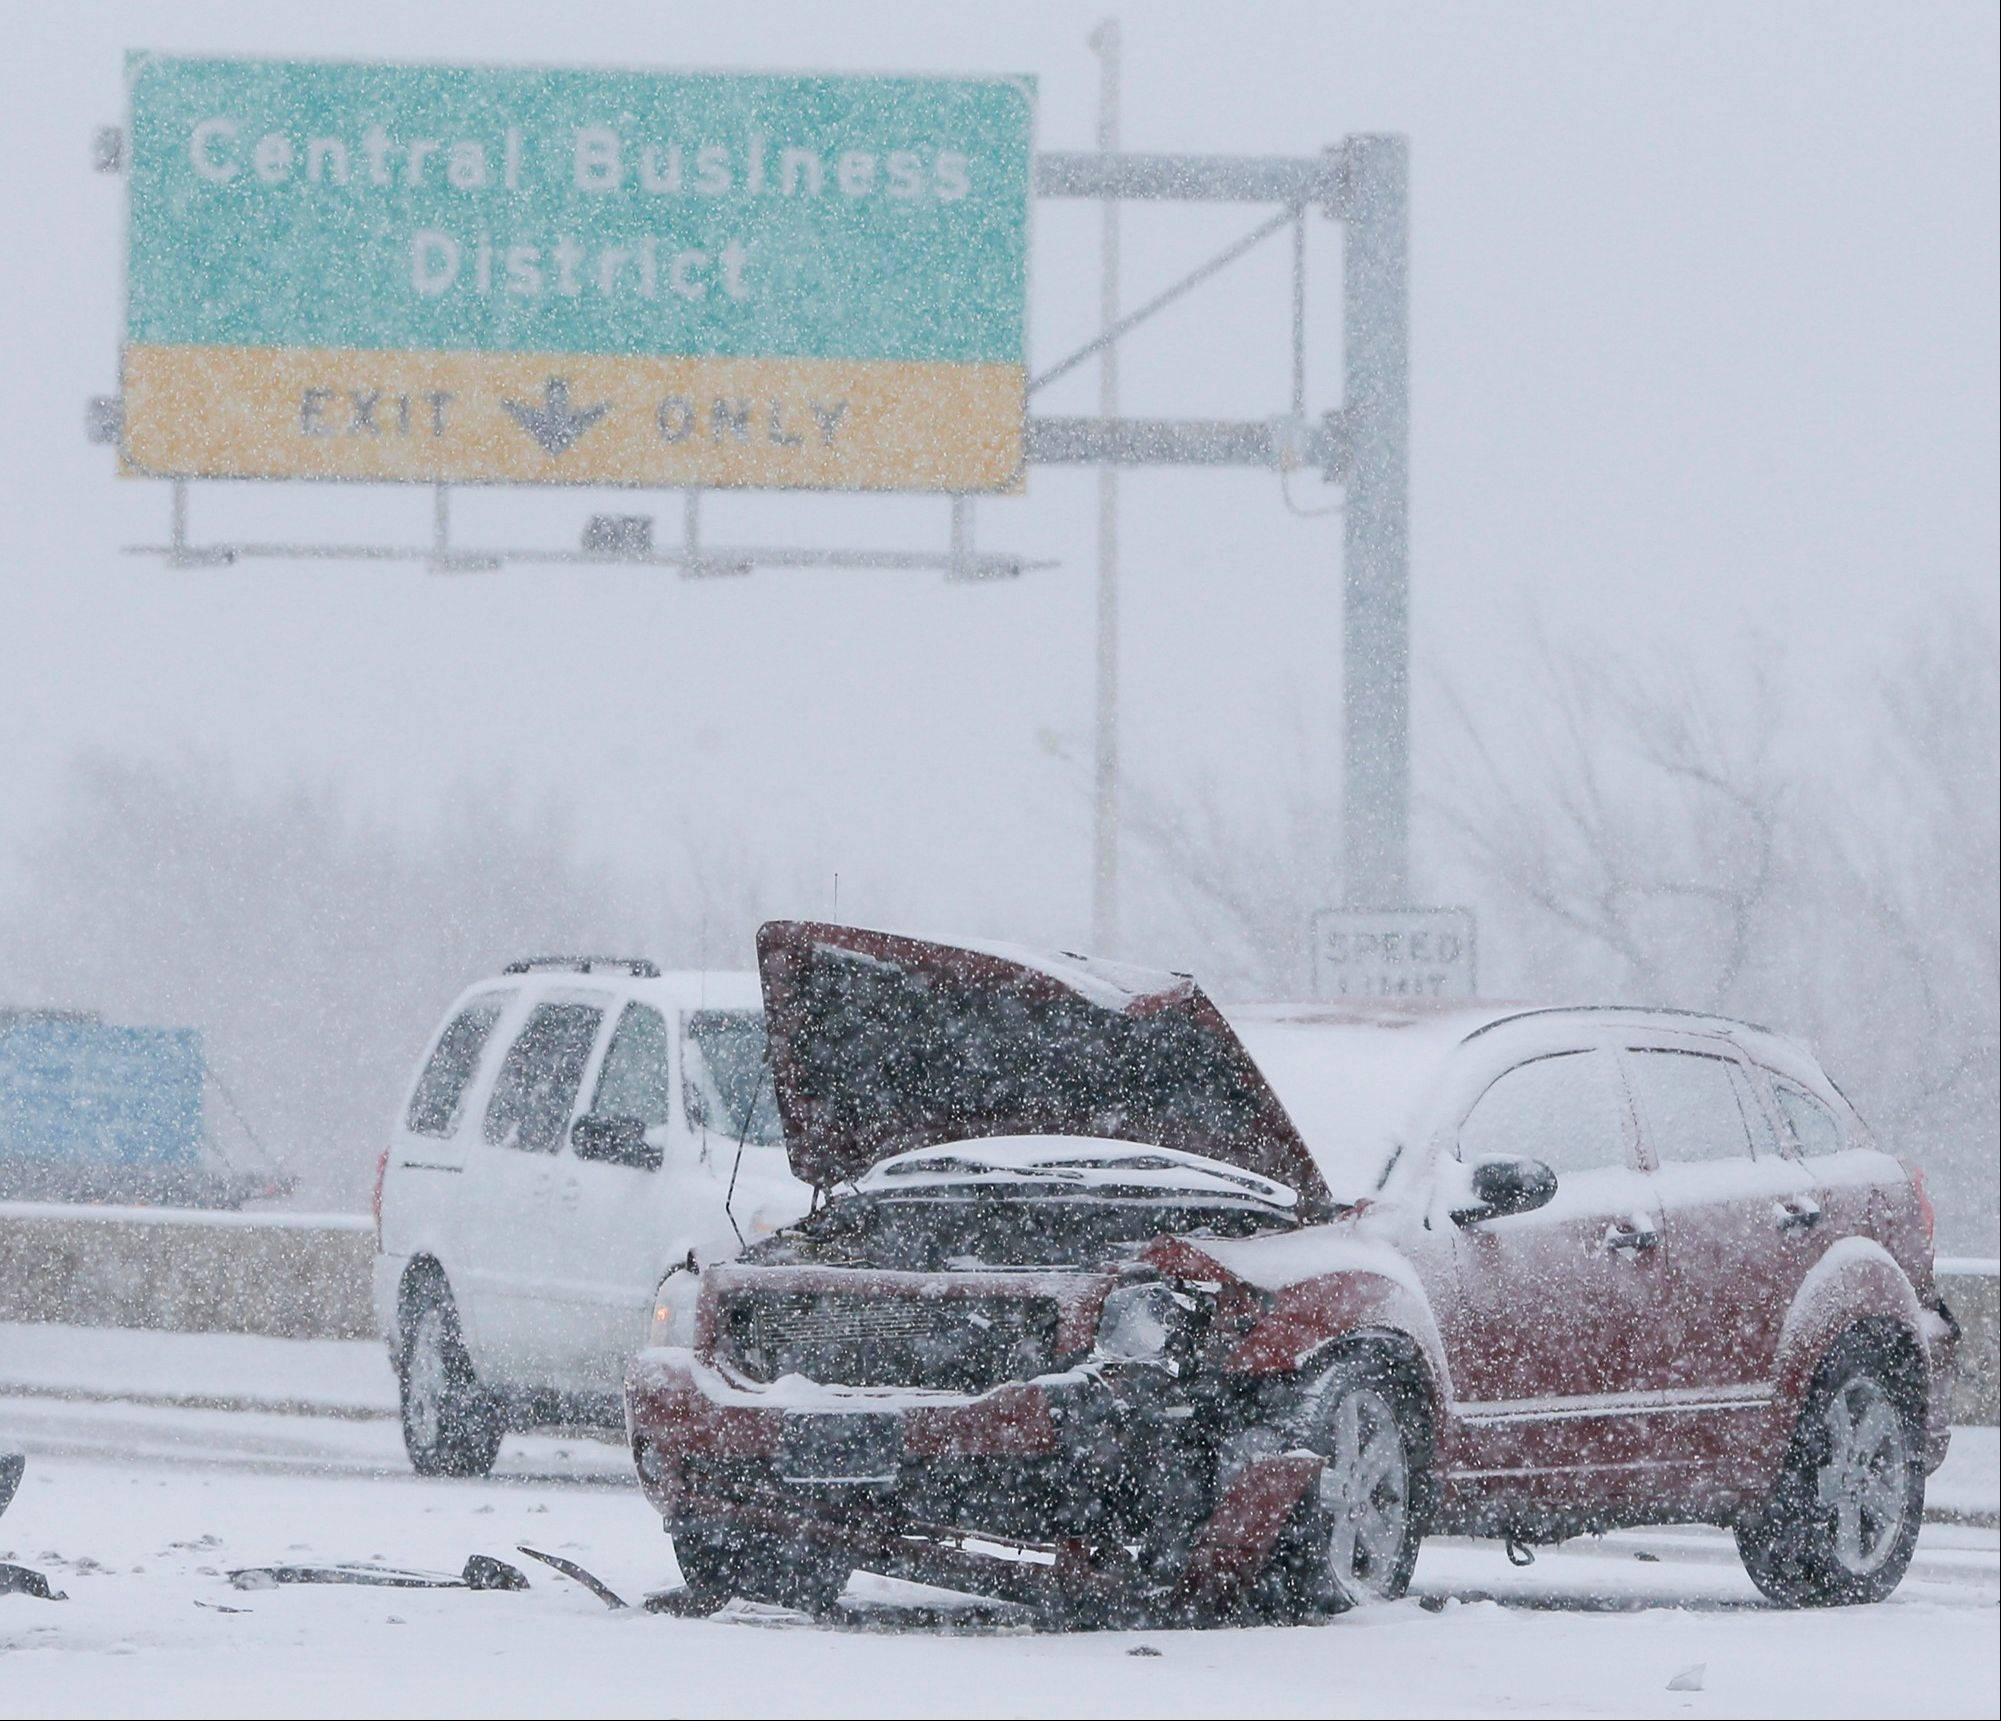 A wrecked car sits in the middle of US Highway 54 near downtown Wichita, Kan. as heavy snow falls on Wednesday morning, Feb. 20, 2013. A large winter storm moved in over the early morning hours and is expected to last until Thursday evening.